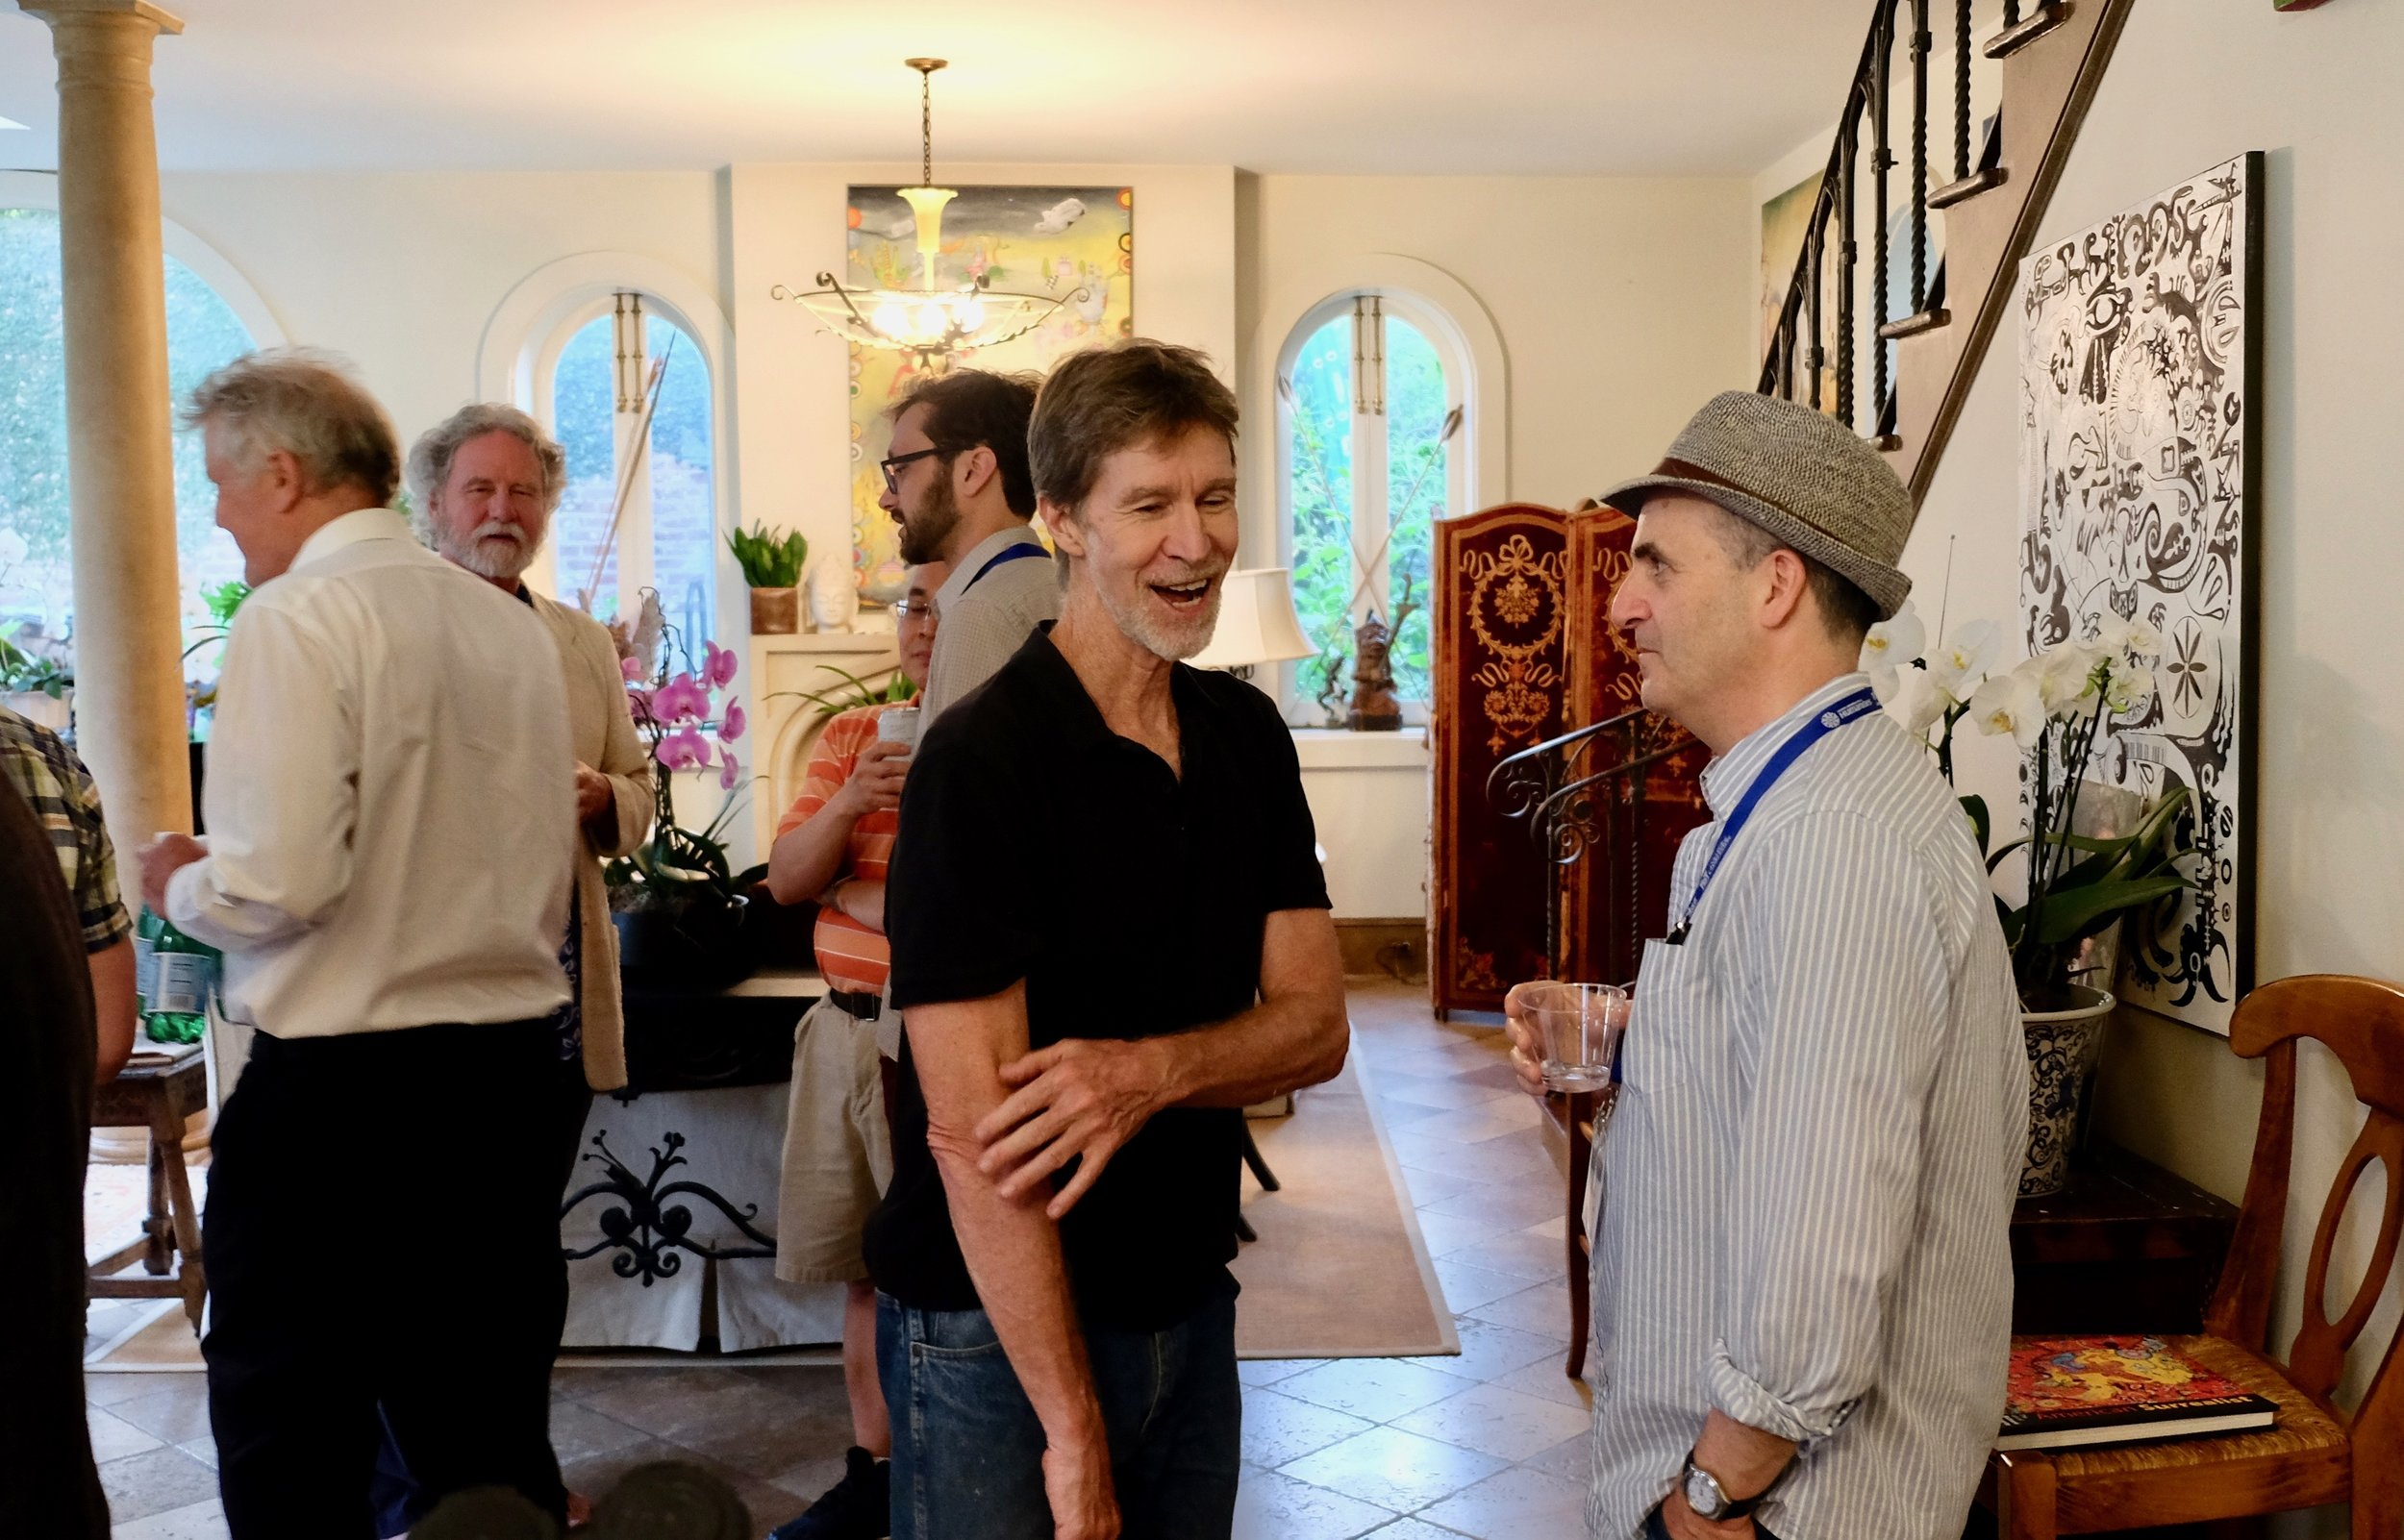 Gary Smith, Evan Thompson, Party at Barbara and Duke Hagerty